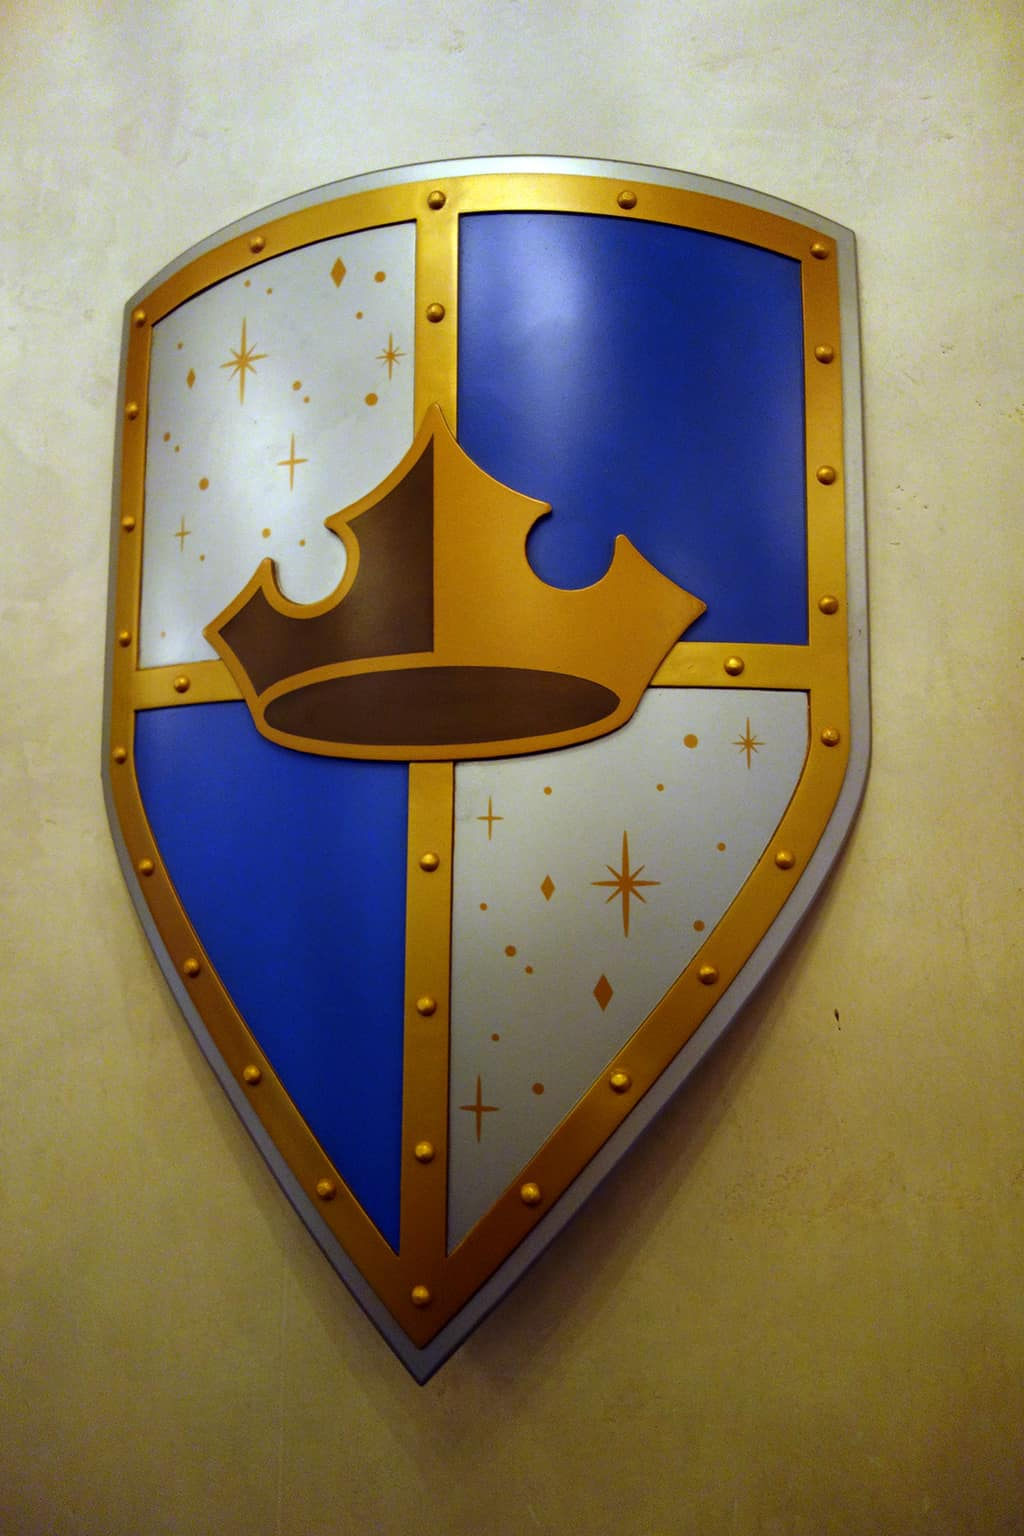 It wouldn't be royal without some shields!